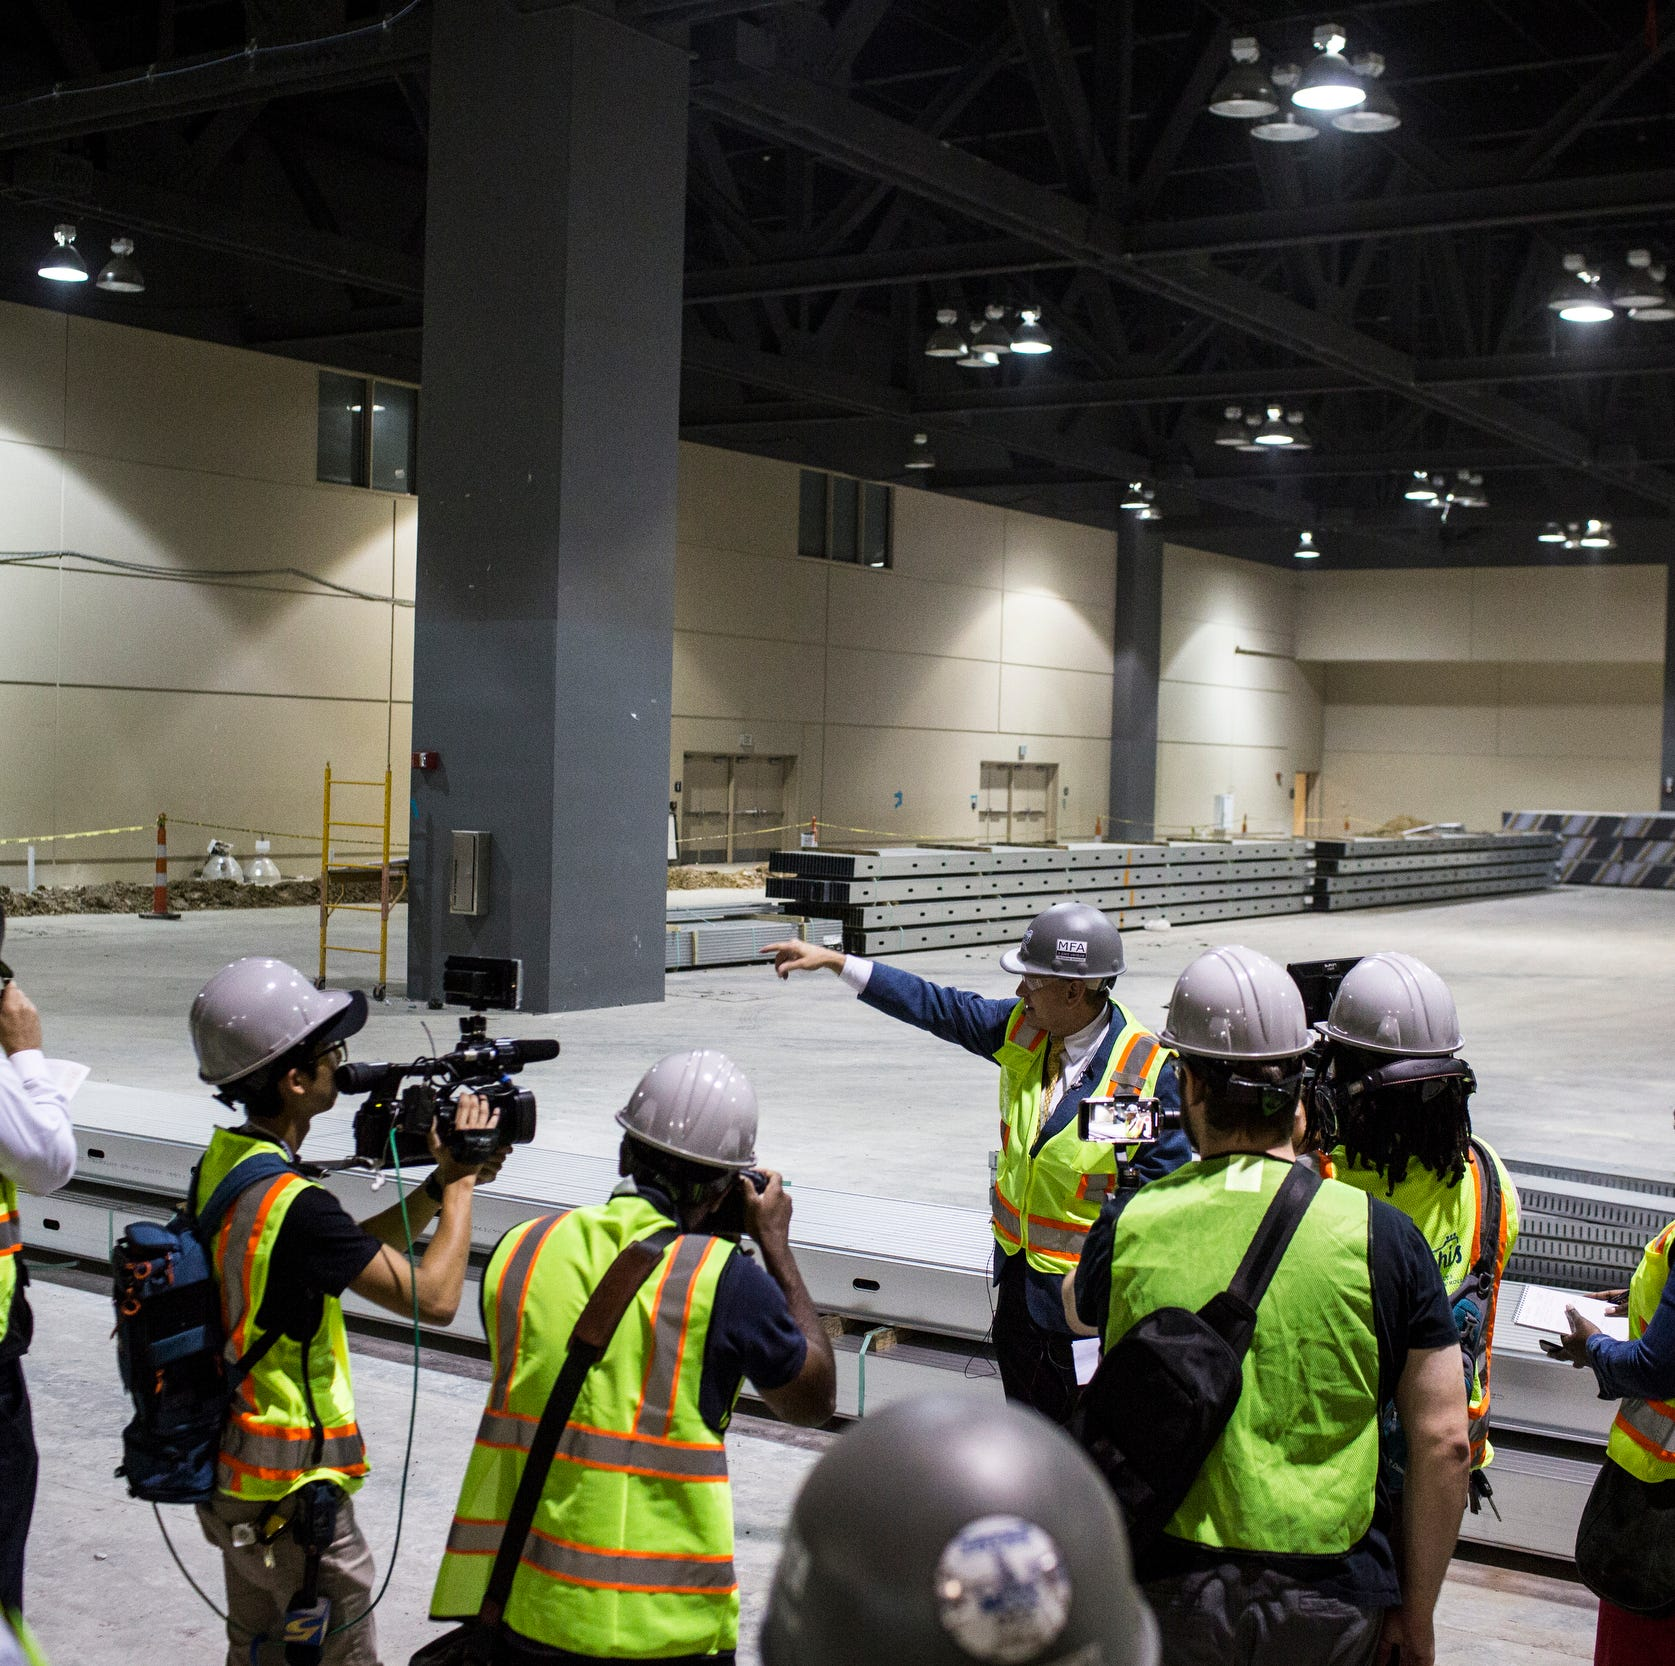 Here's a sneak peek of the Memphis Convention Center renovation set to finish in 2020